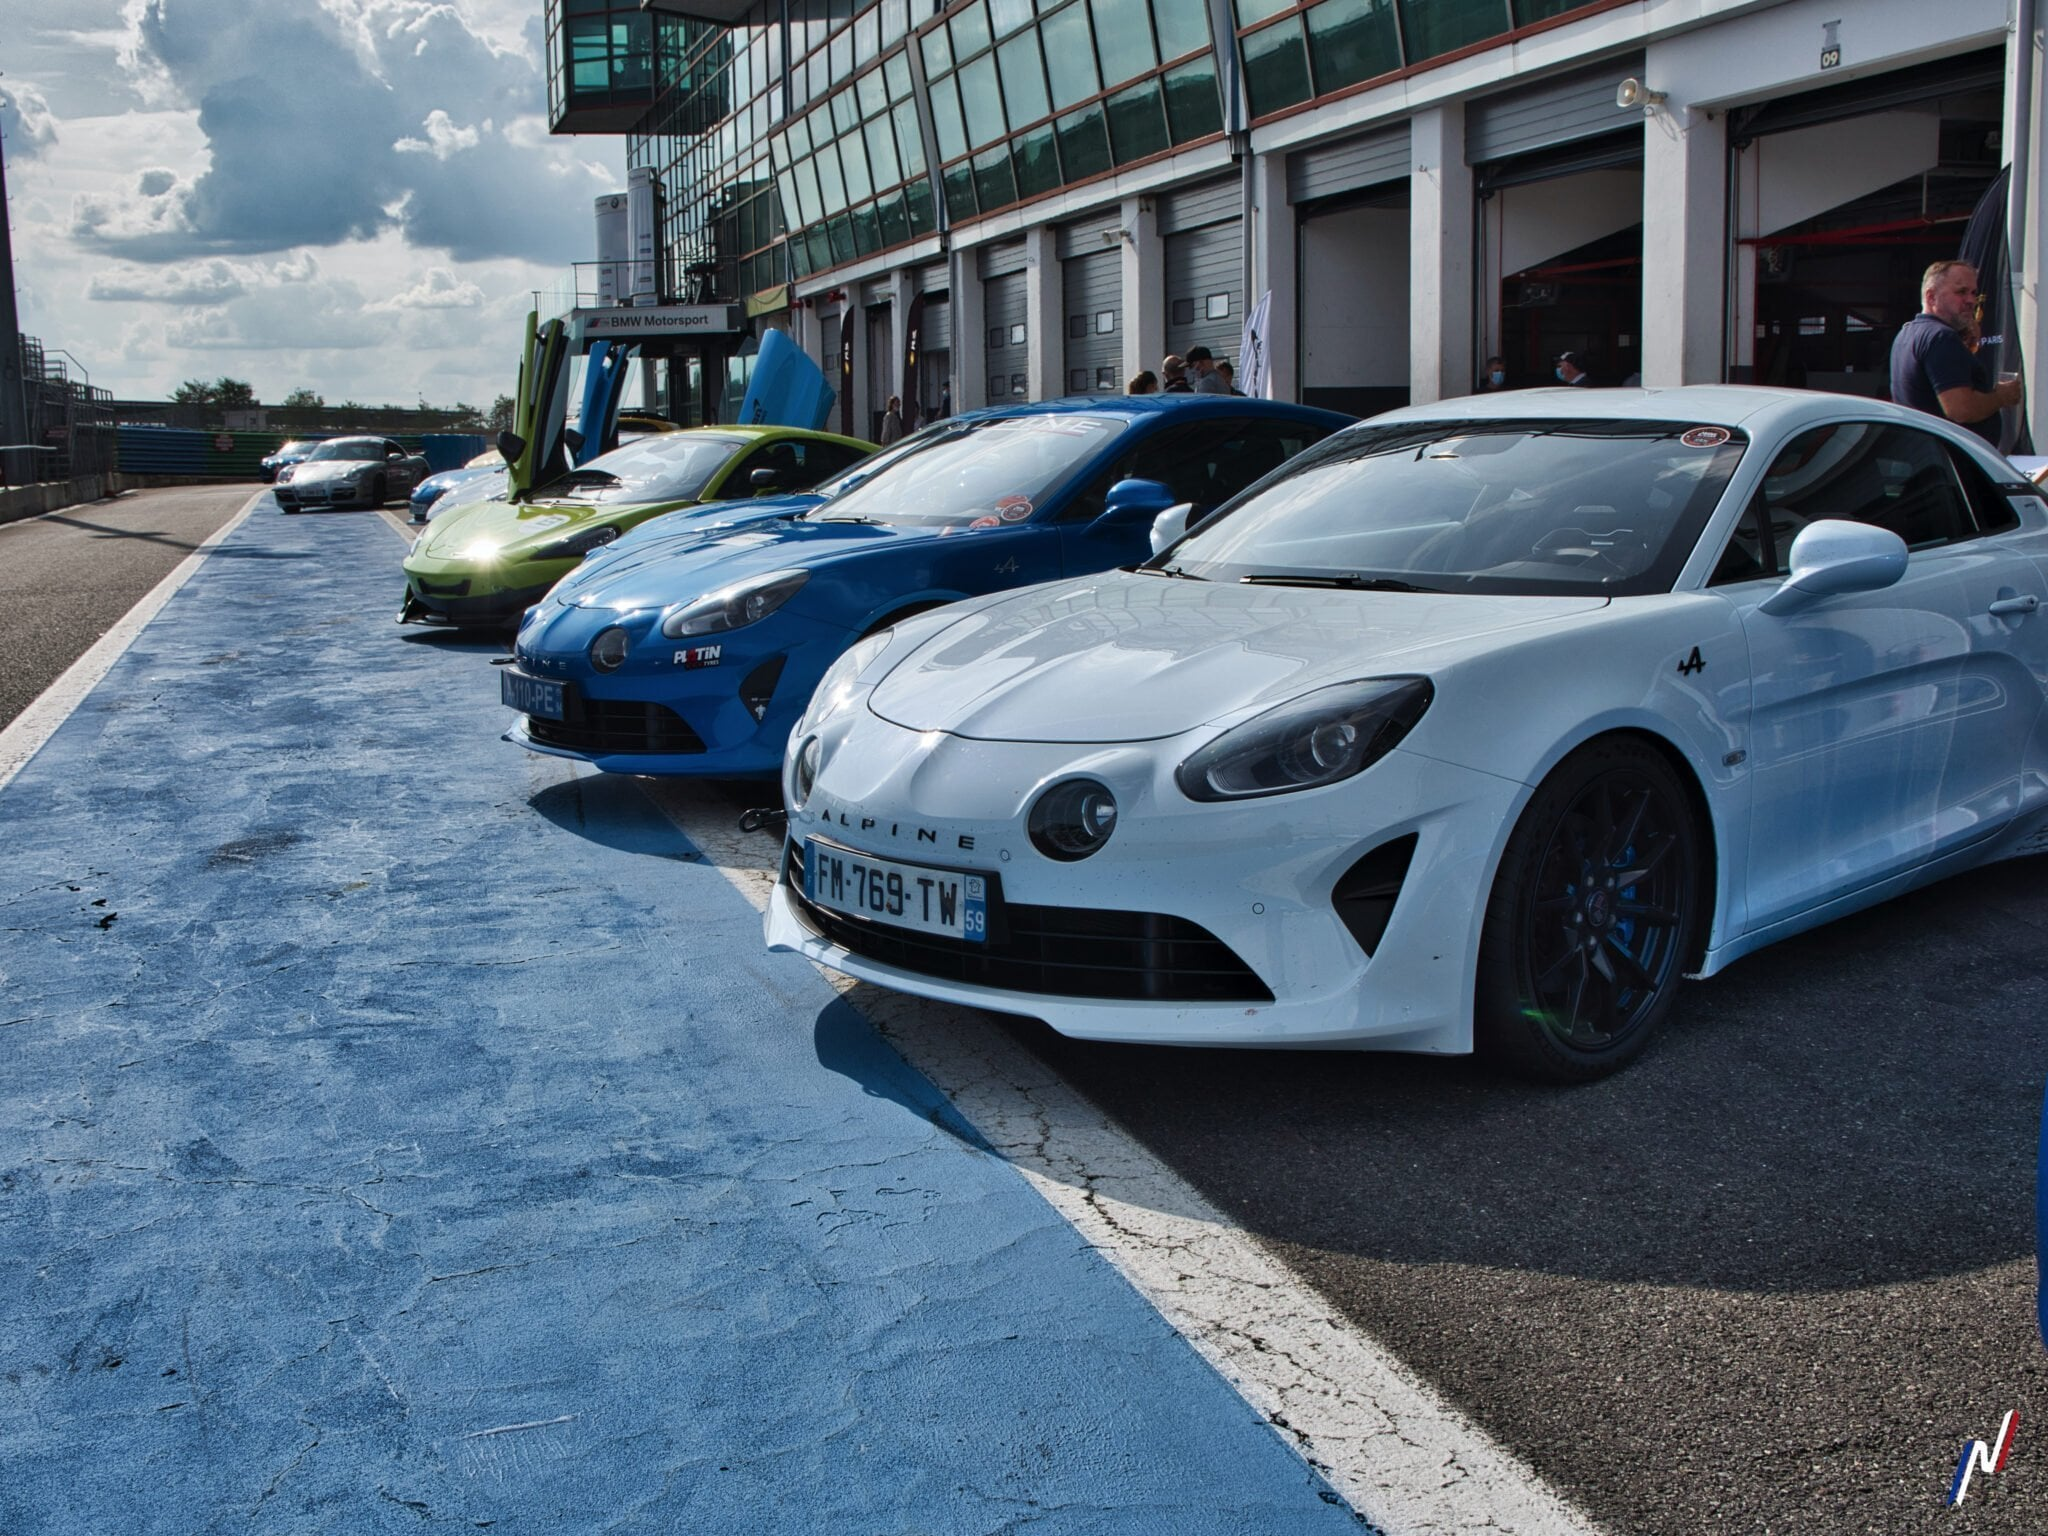 Motorsport Mag Track Day Magny Cours Alpine A110  P1110023 Alpine Planet | Track Day Motorsport 2020 : Magny-Cours, des Alpine et du fun !